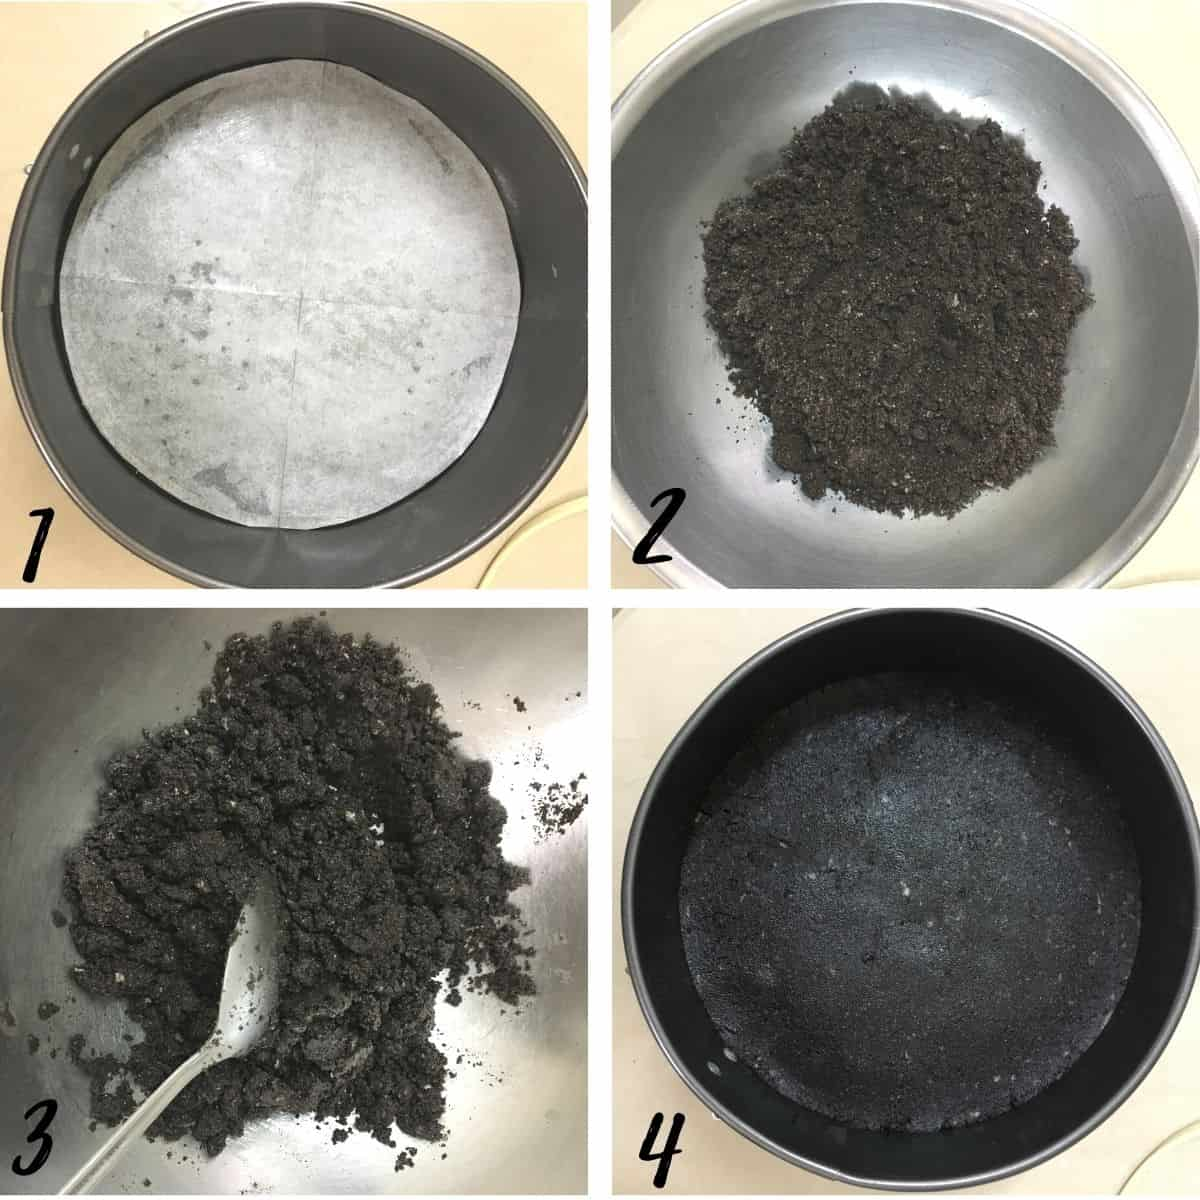 A poster of 4 images showing how to make Oreo cheesecake crust